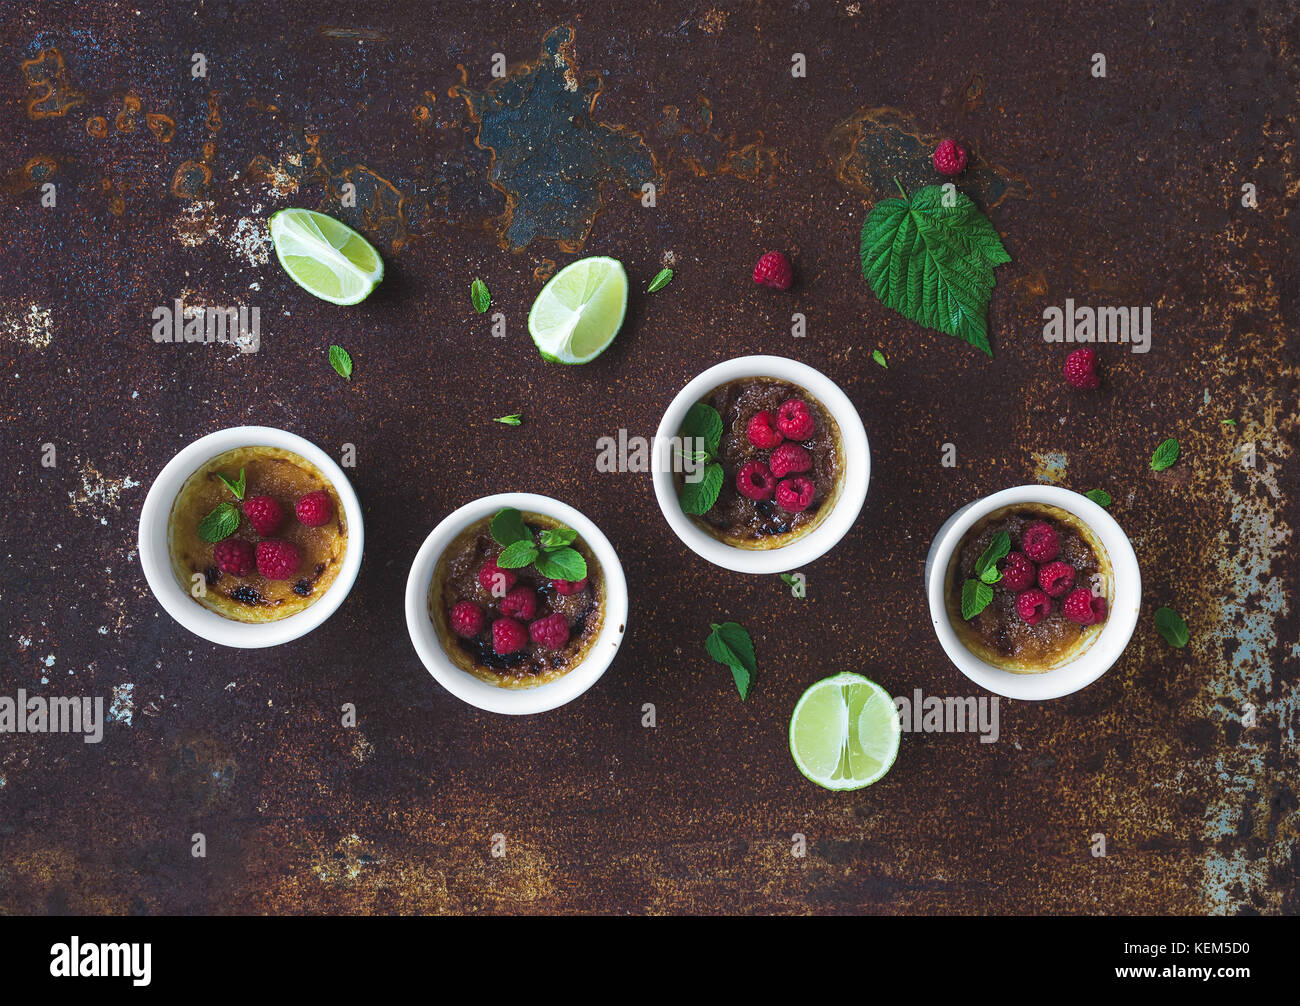 Creme brulees with raspberries and mint in white bowls over grunge metal backdrop. Top view - Stock Image